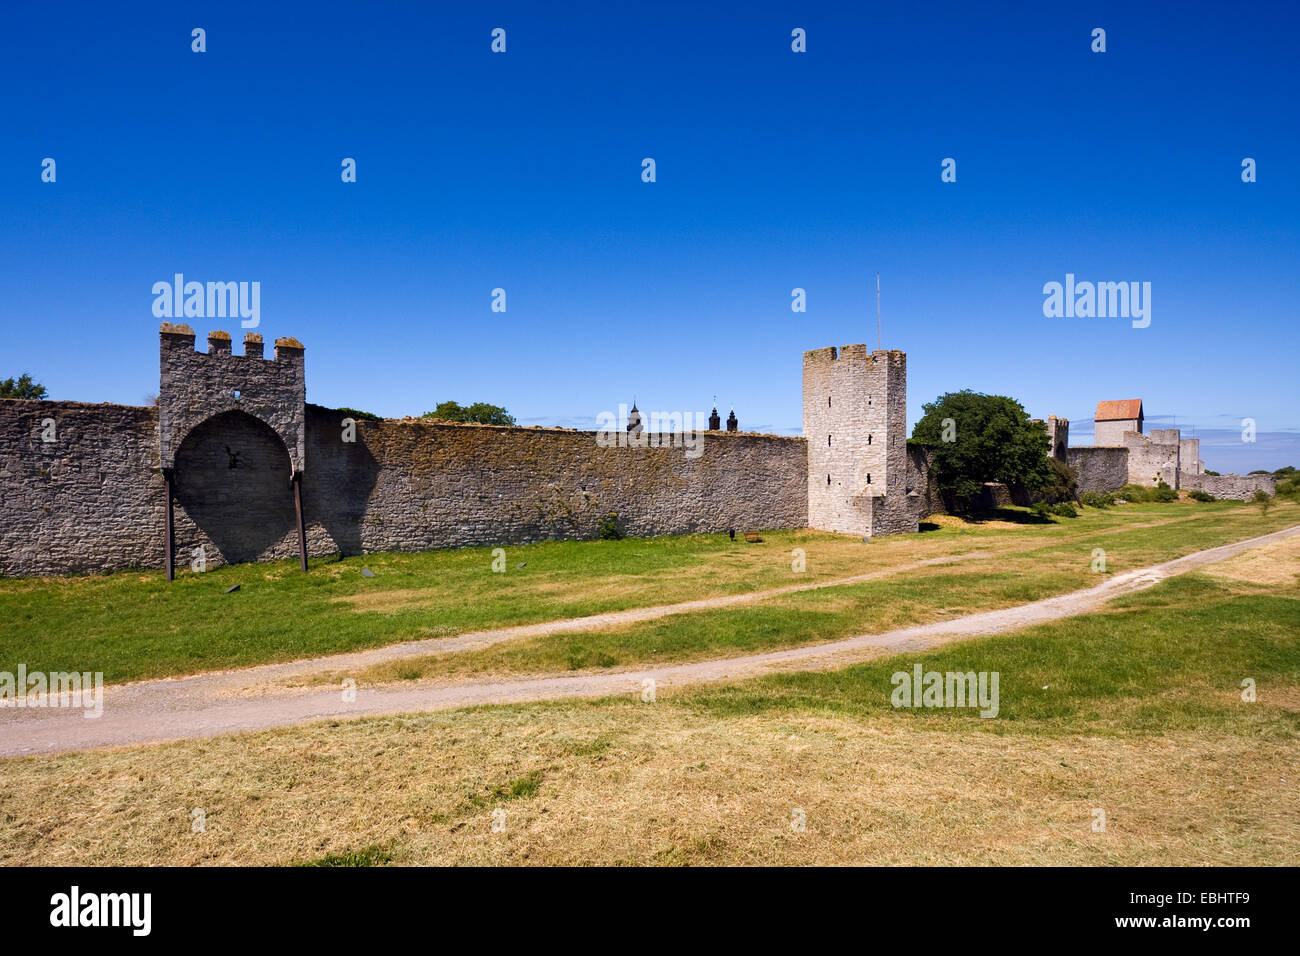 The old city wall surrounding the Hanseatic town of Visby, a UNESCO World Heritage, on the island of Gotland in - Stock Image